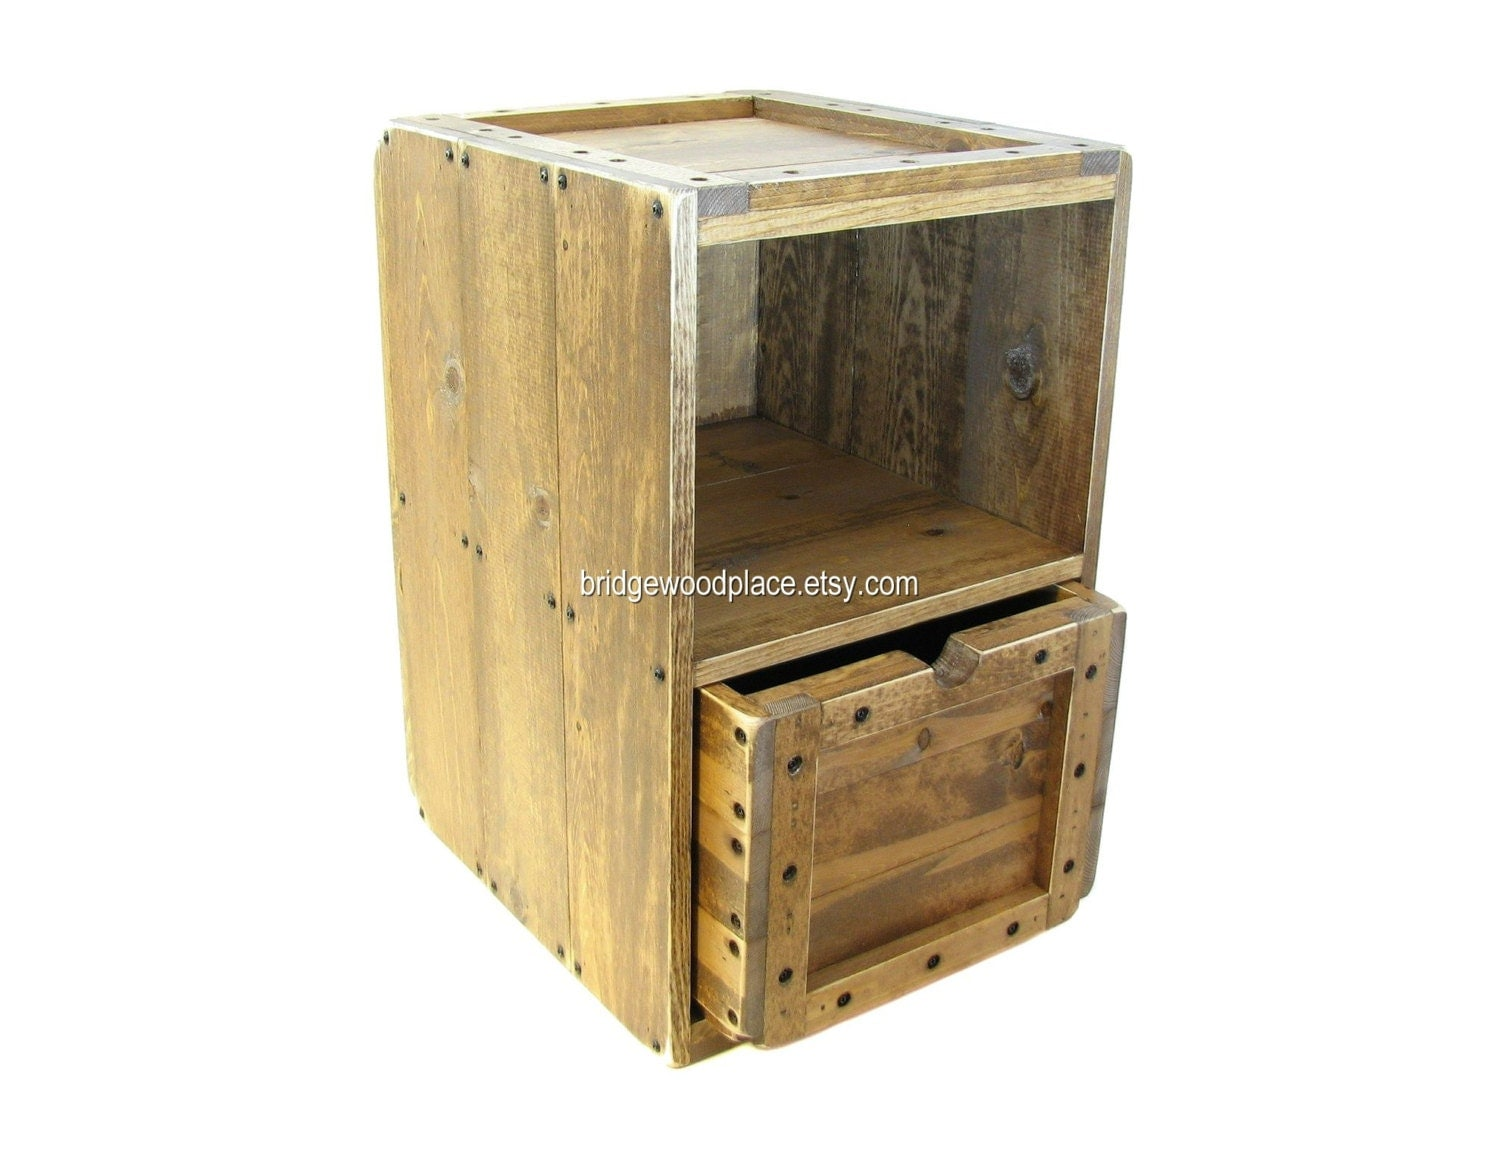 Side table wood crate furniture solid wooden by bridgewoodplace Wooden crates furniture